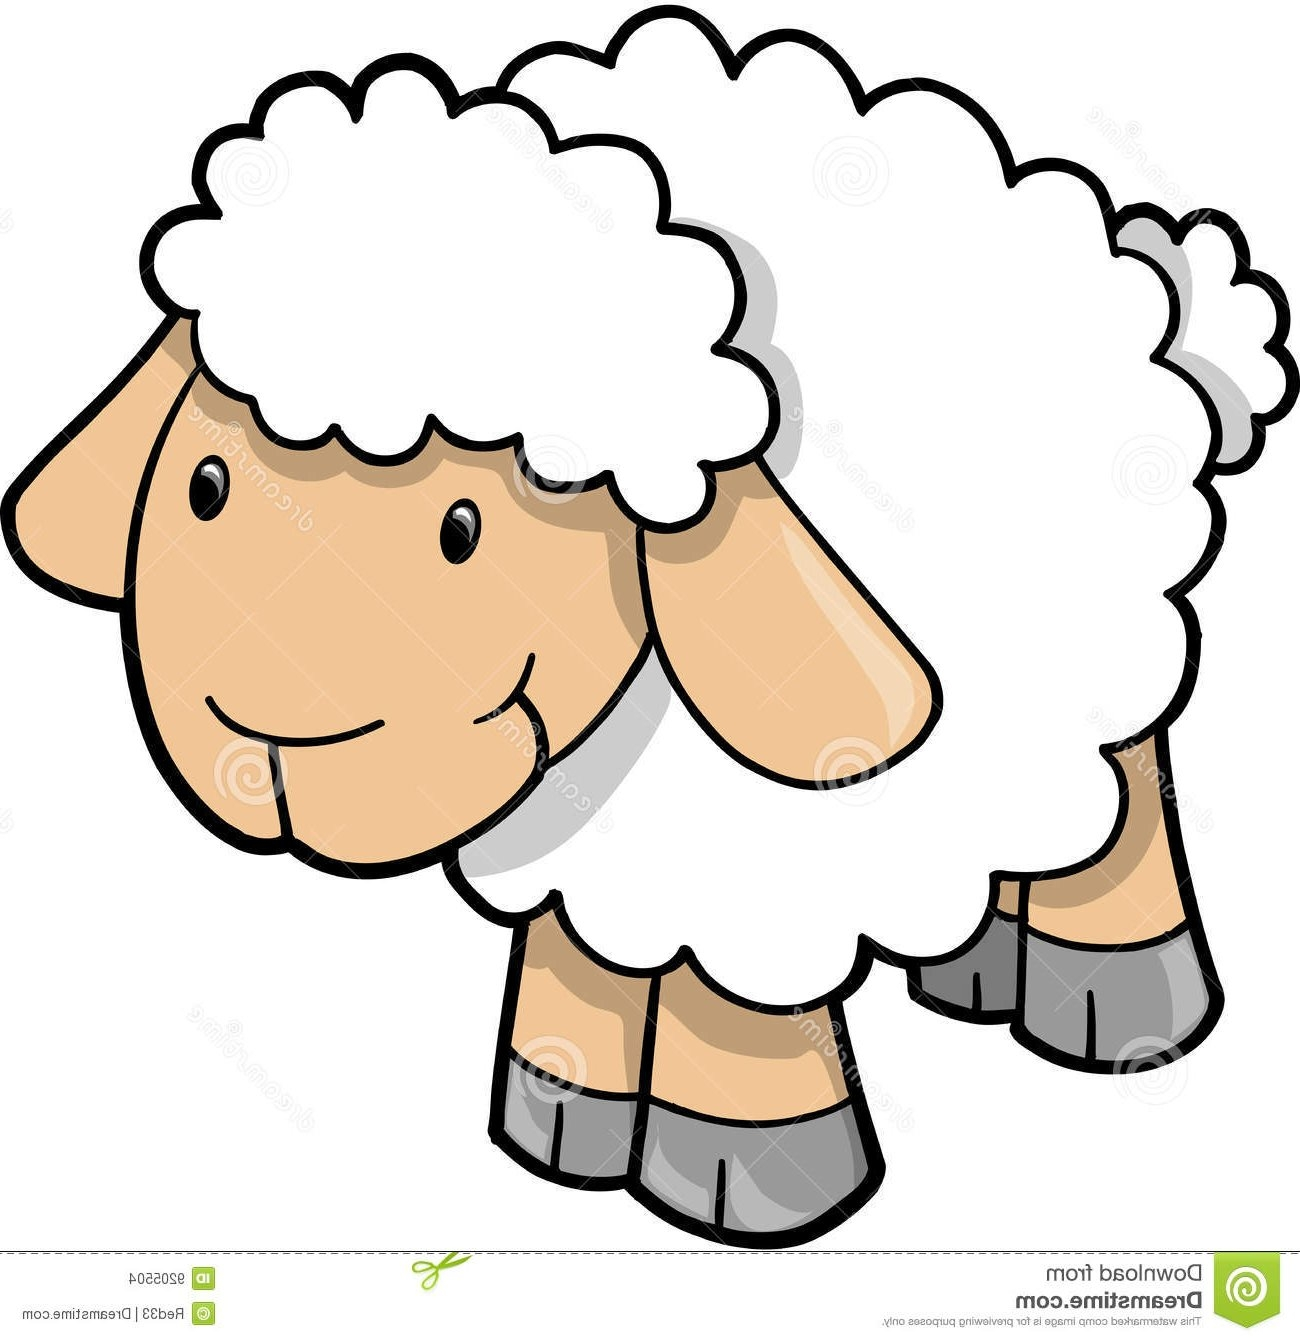 cute sheep clipart at getdrawings com free for personal use cute rh getdrawings com clipart sheep black and white clipart shepherd leading sheep